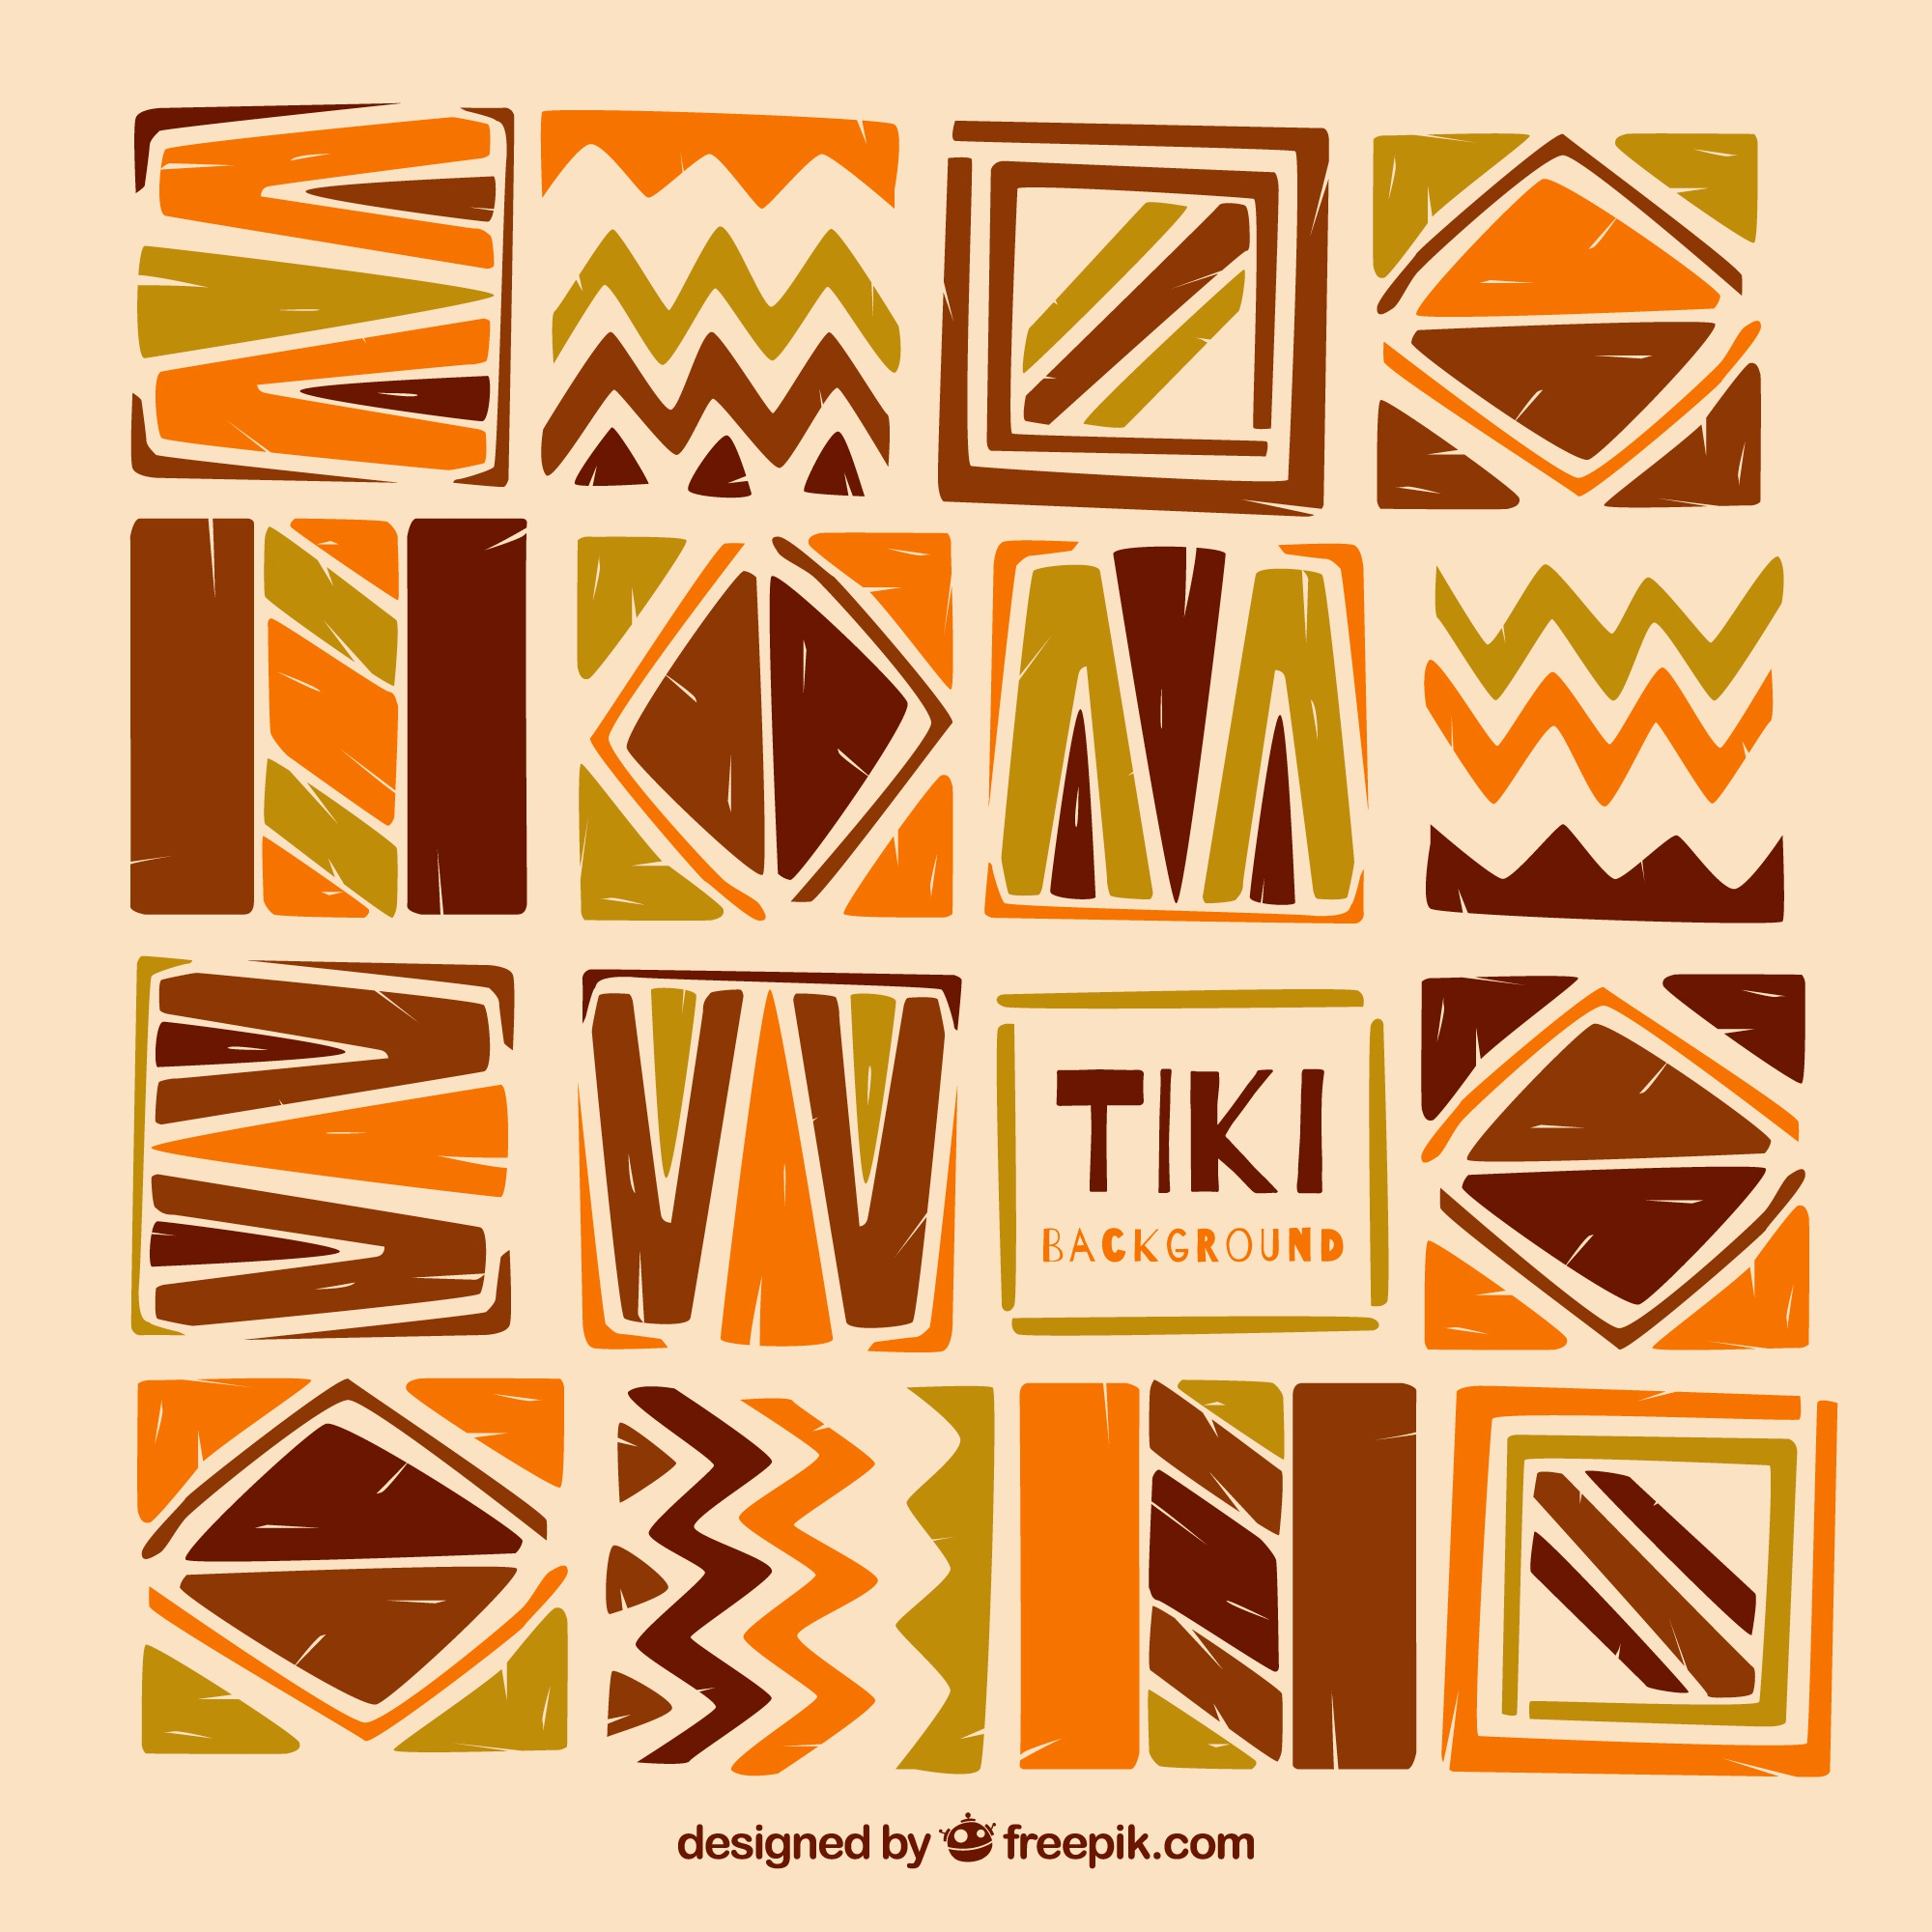 Background tiki of hand painted abstract shapes